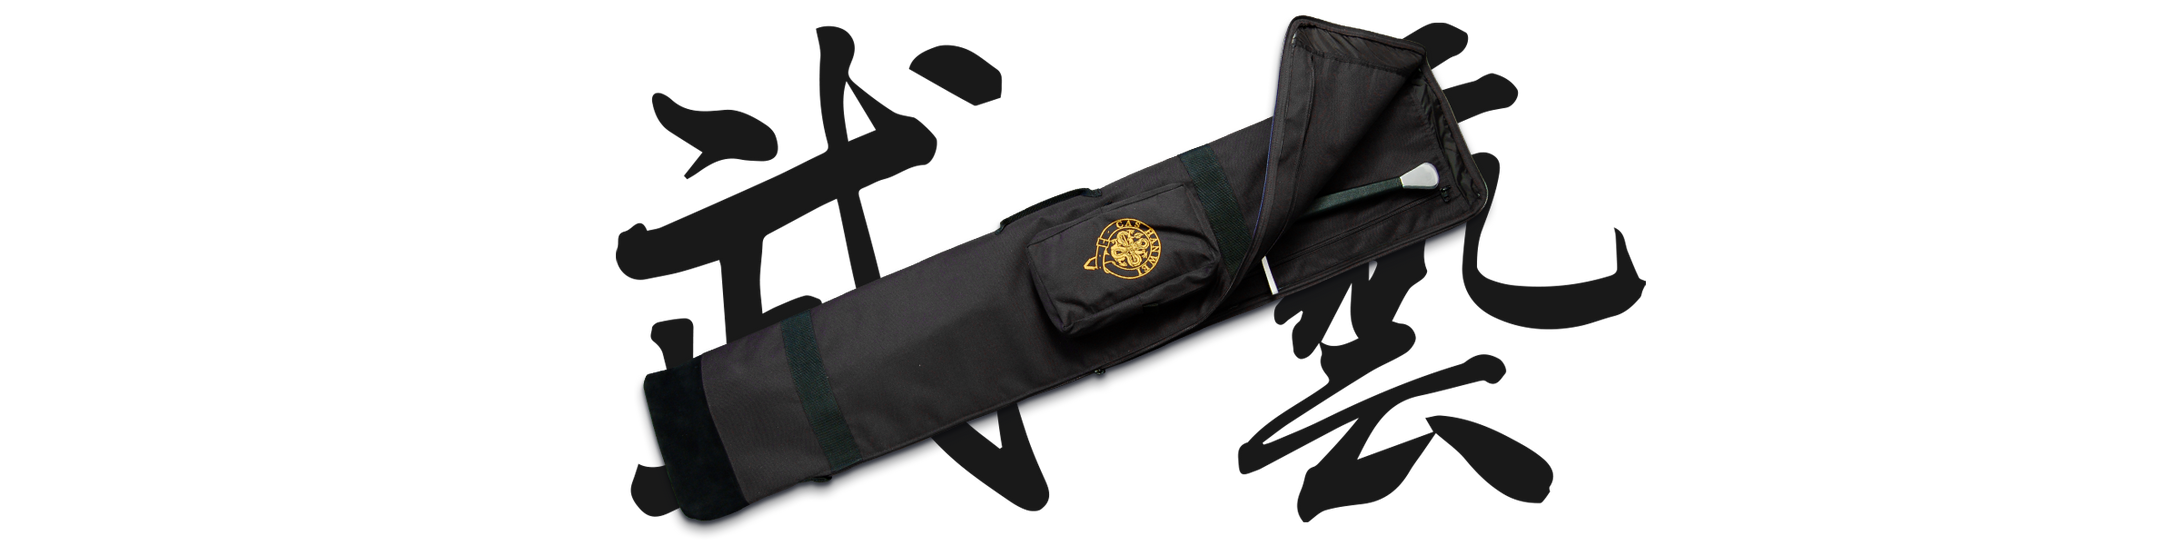 Sword Case - Medium